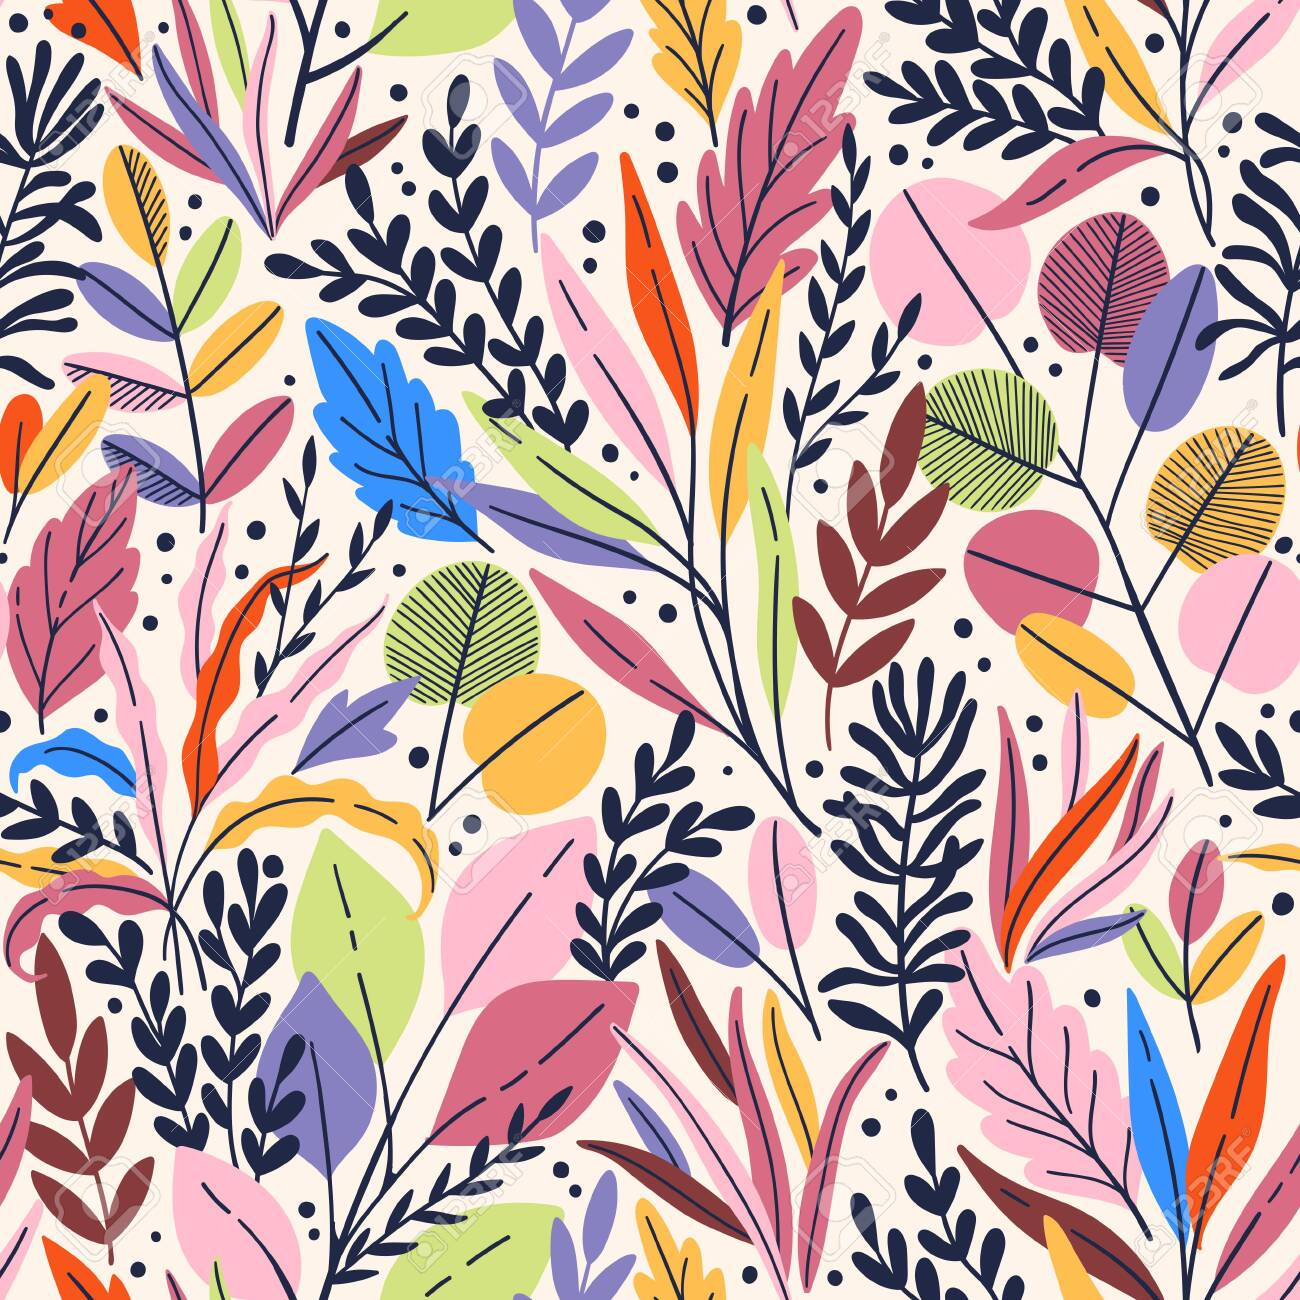 Exotic vector seamless pattern with eucalyptus leaves and plant branches. Tropical floral background - 144102748